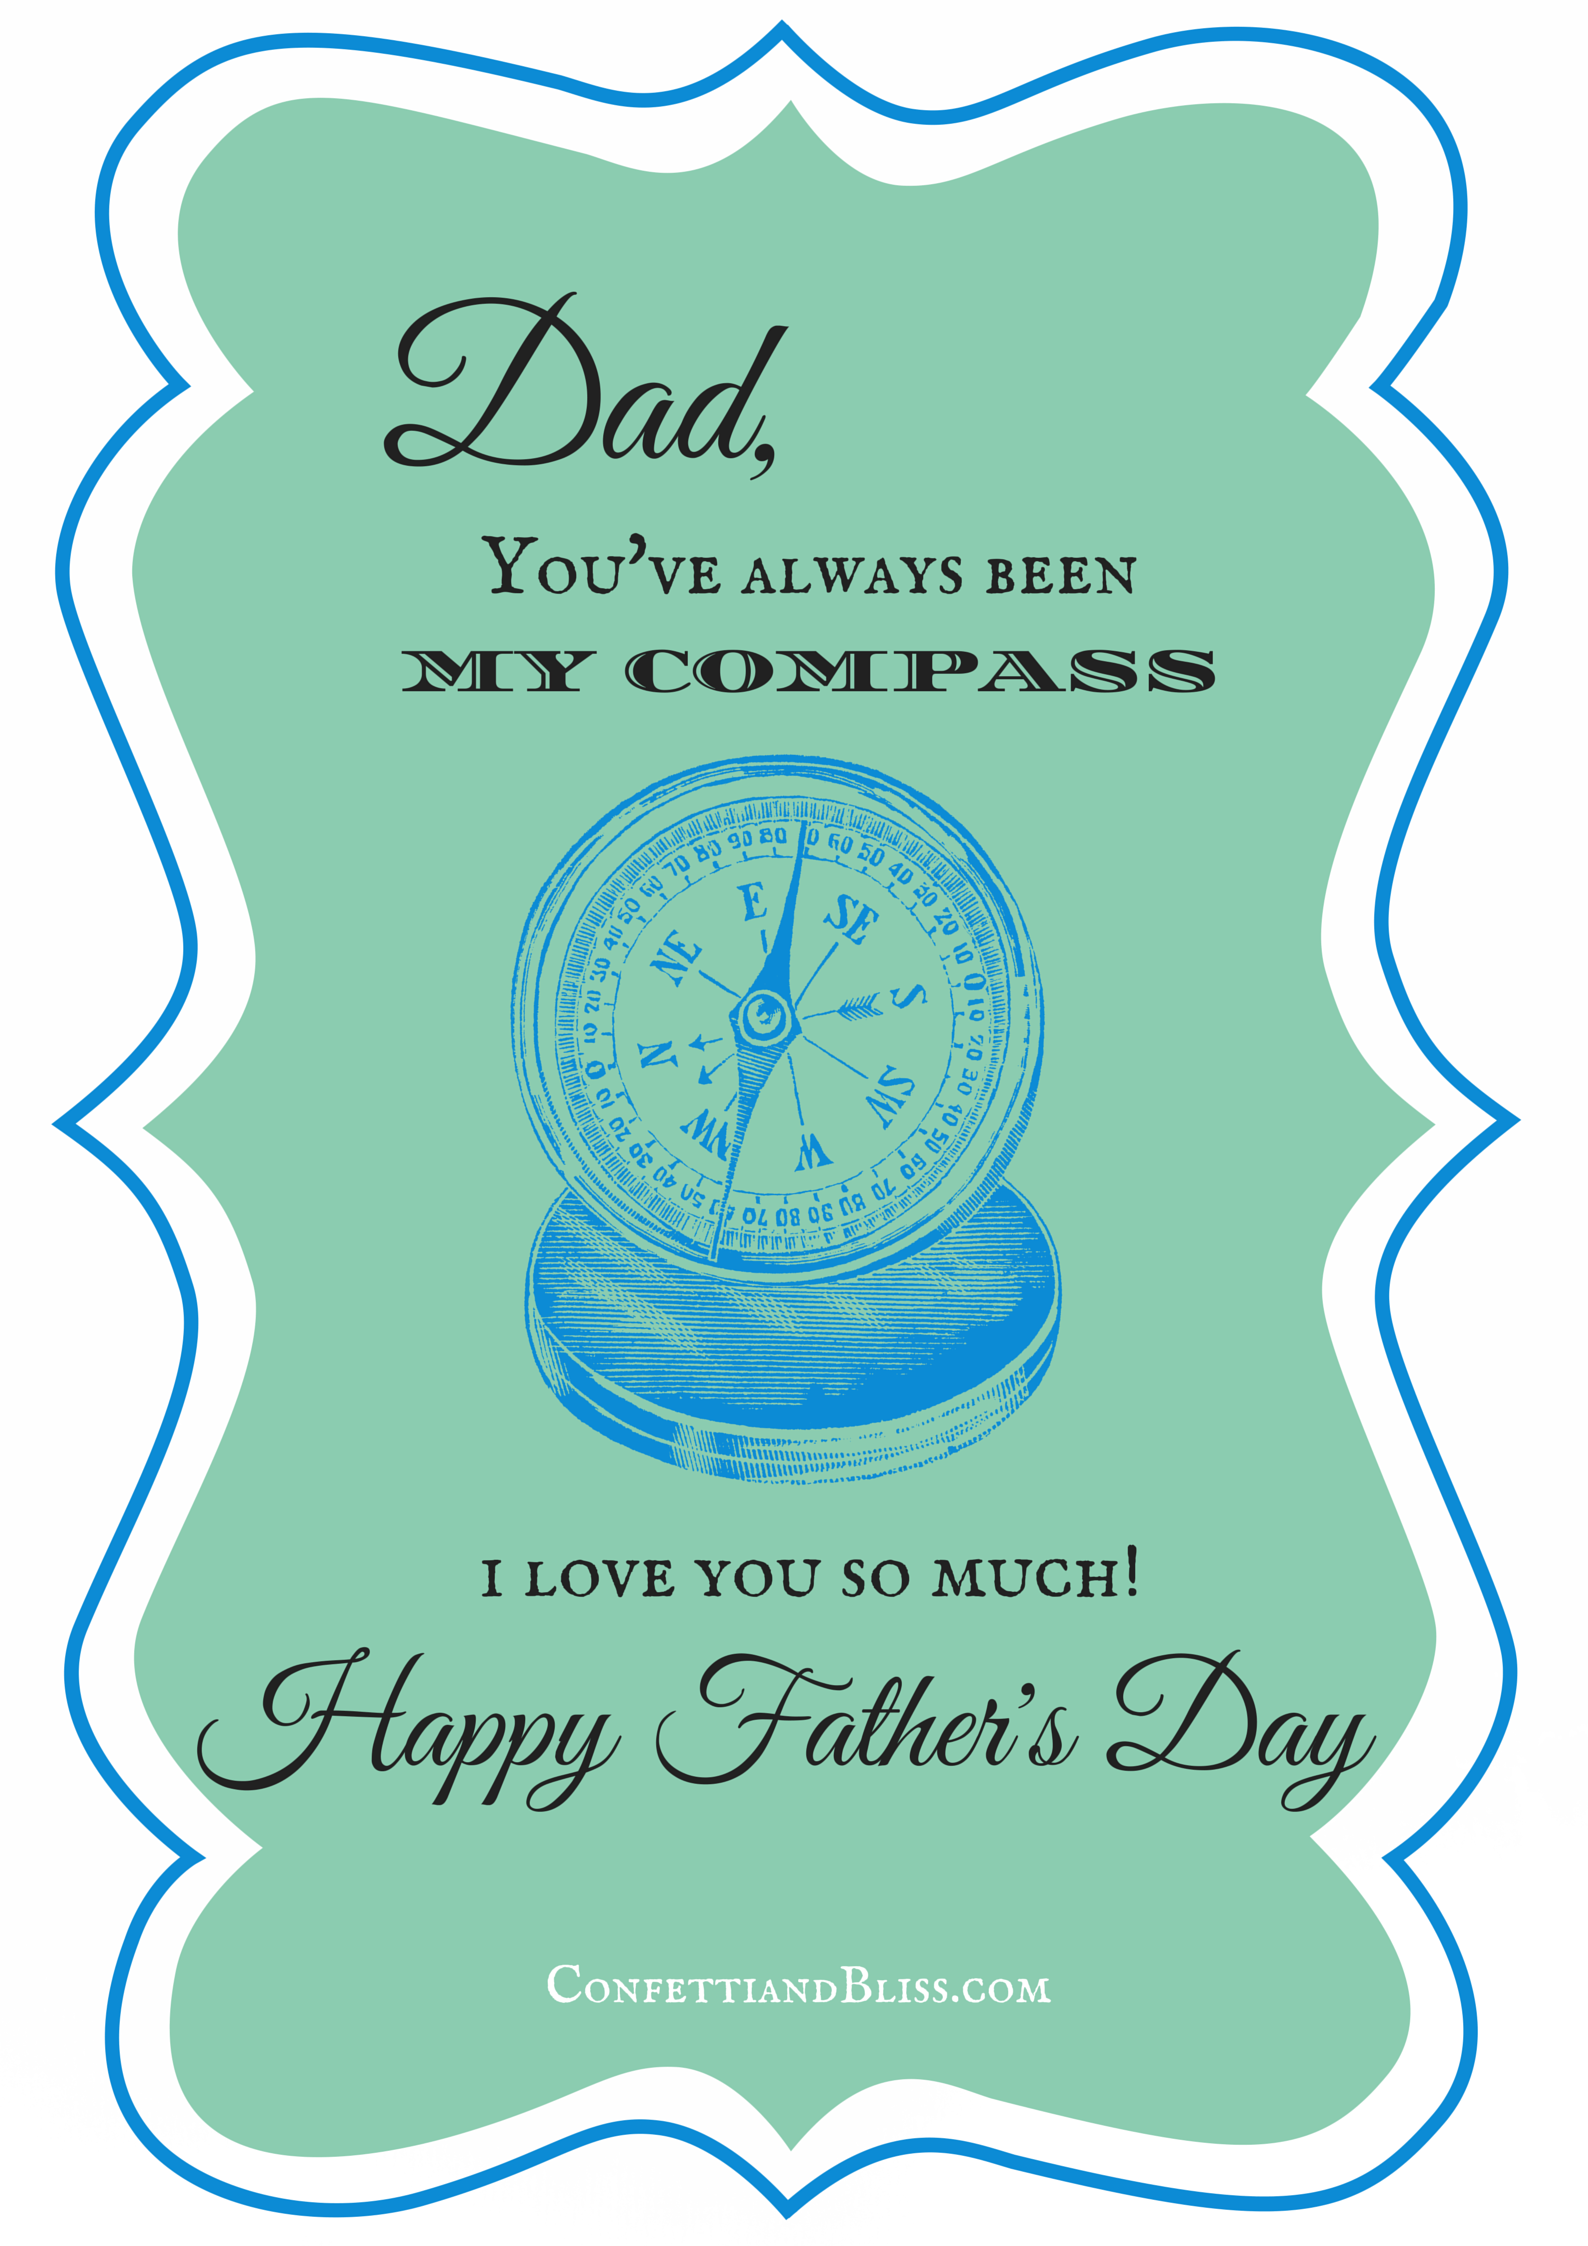 Fathers Day Greeting Card Wording Samples Free Resource